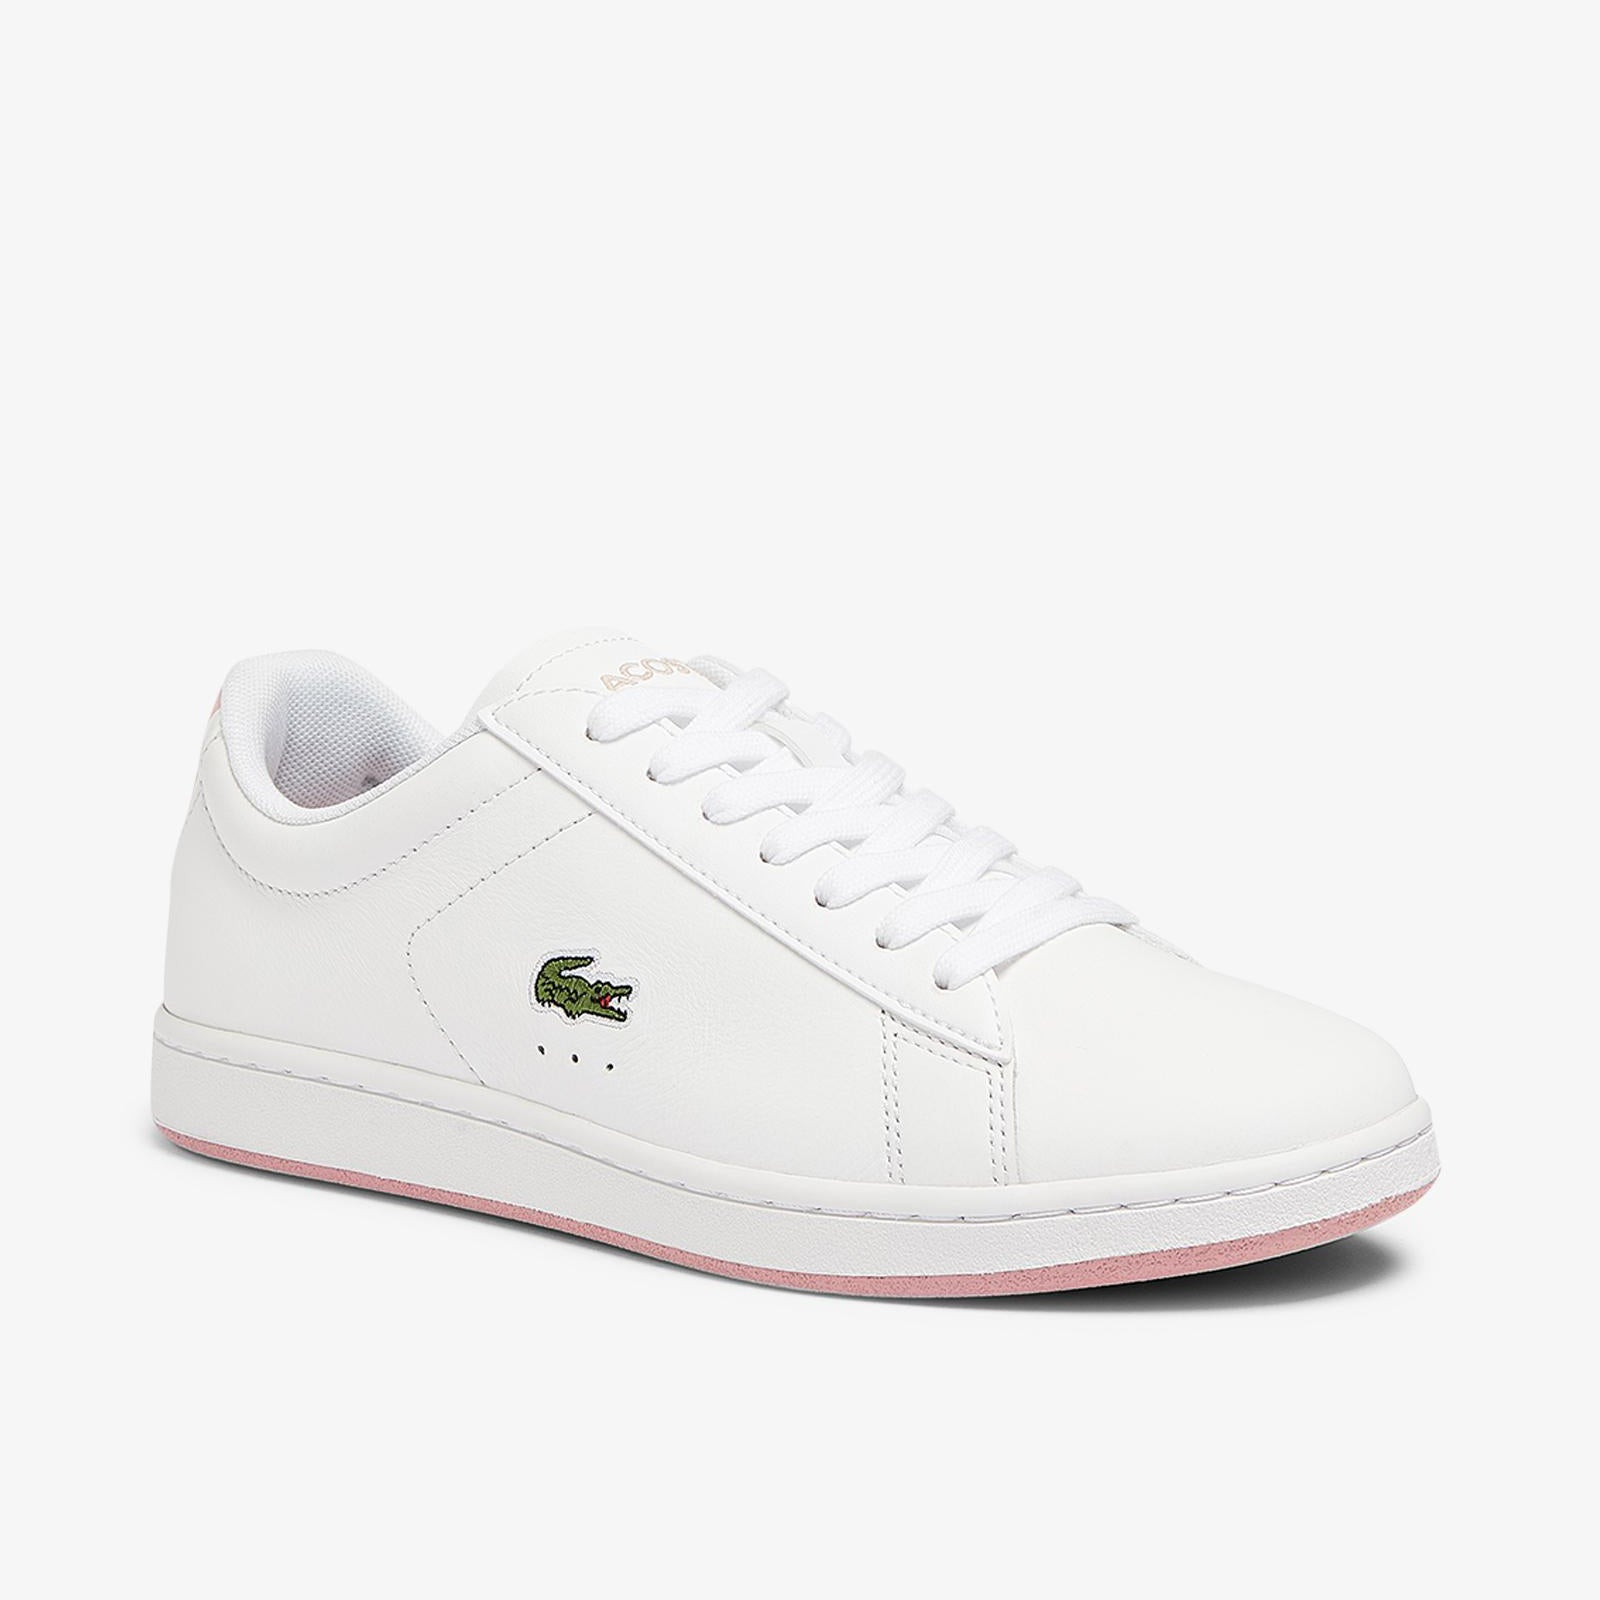 Womens Carnaby Evo 0721 2 - White/Light Pink